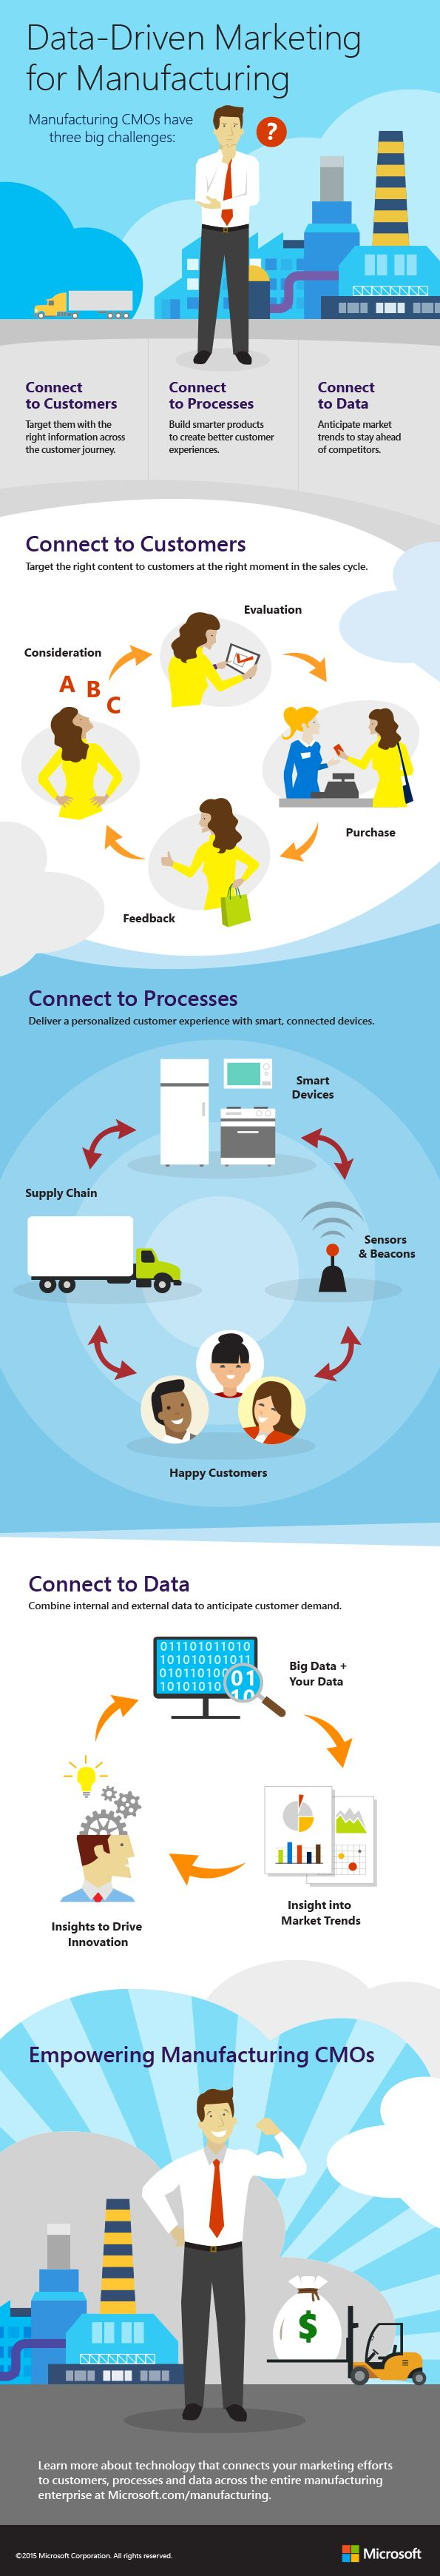 Data-Driven Marketing for Manufacturing #infographic #Marketing